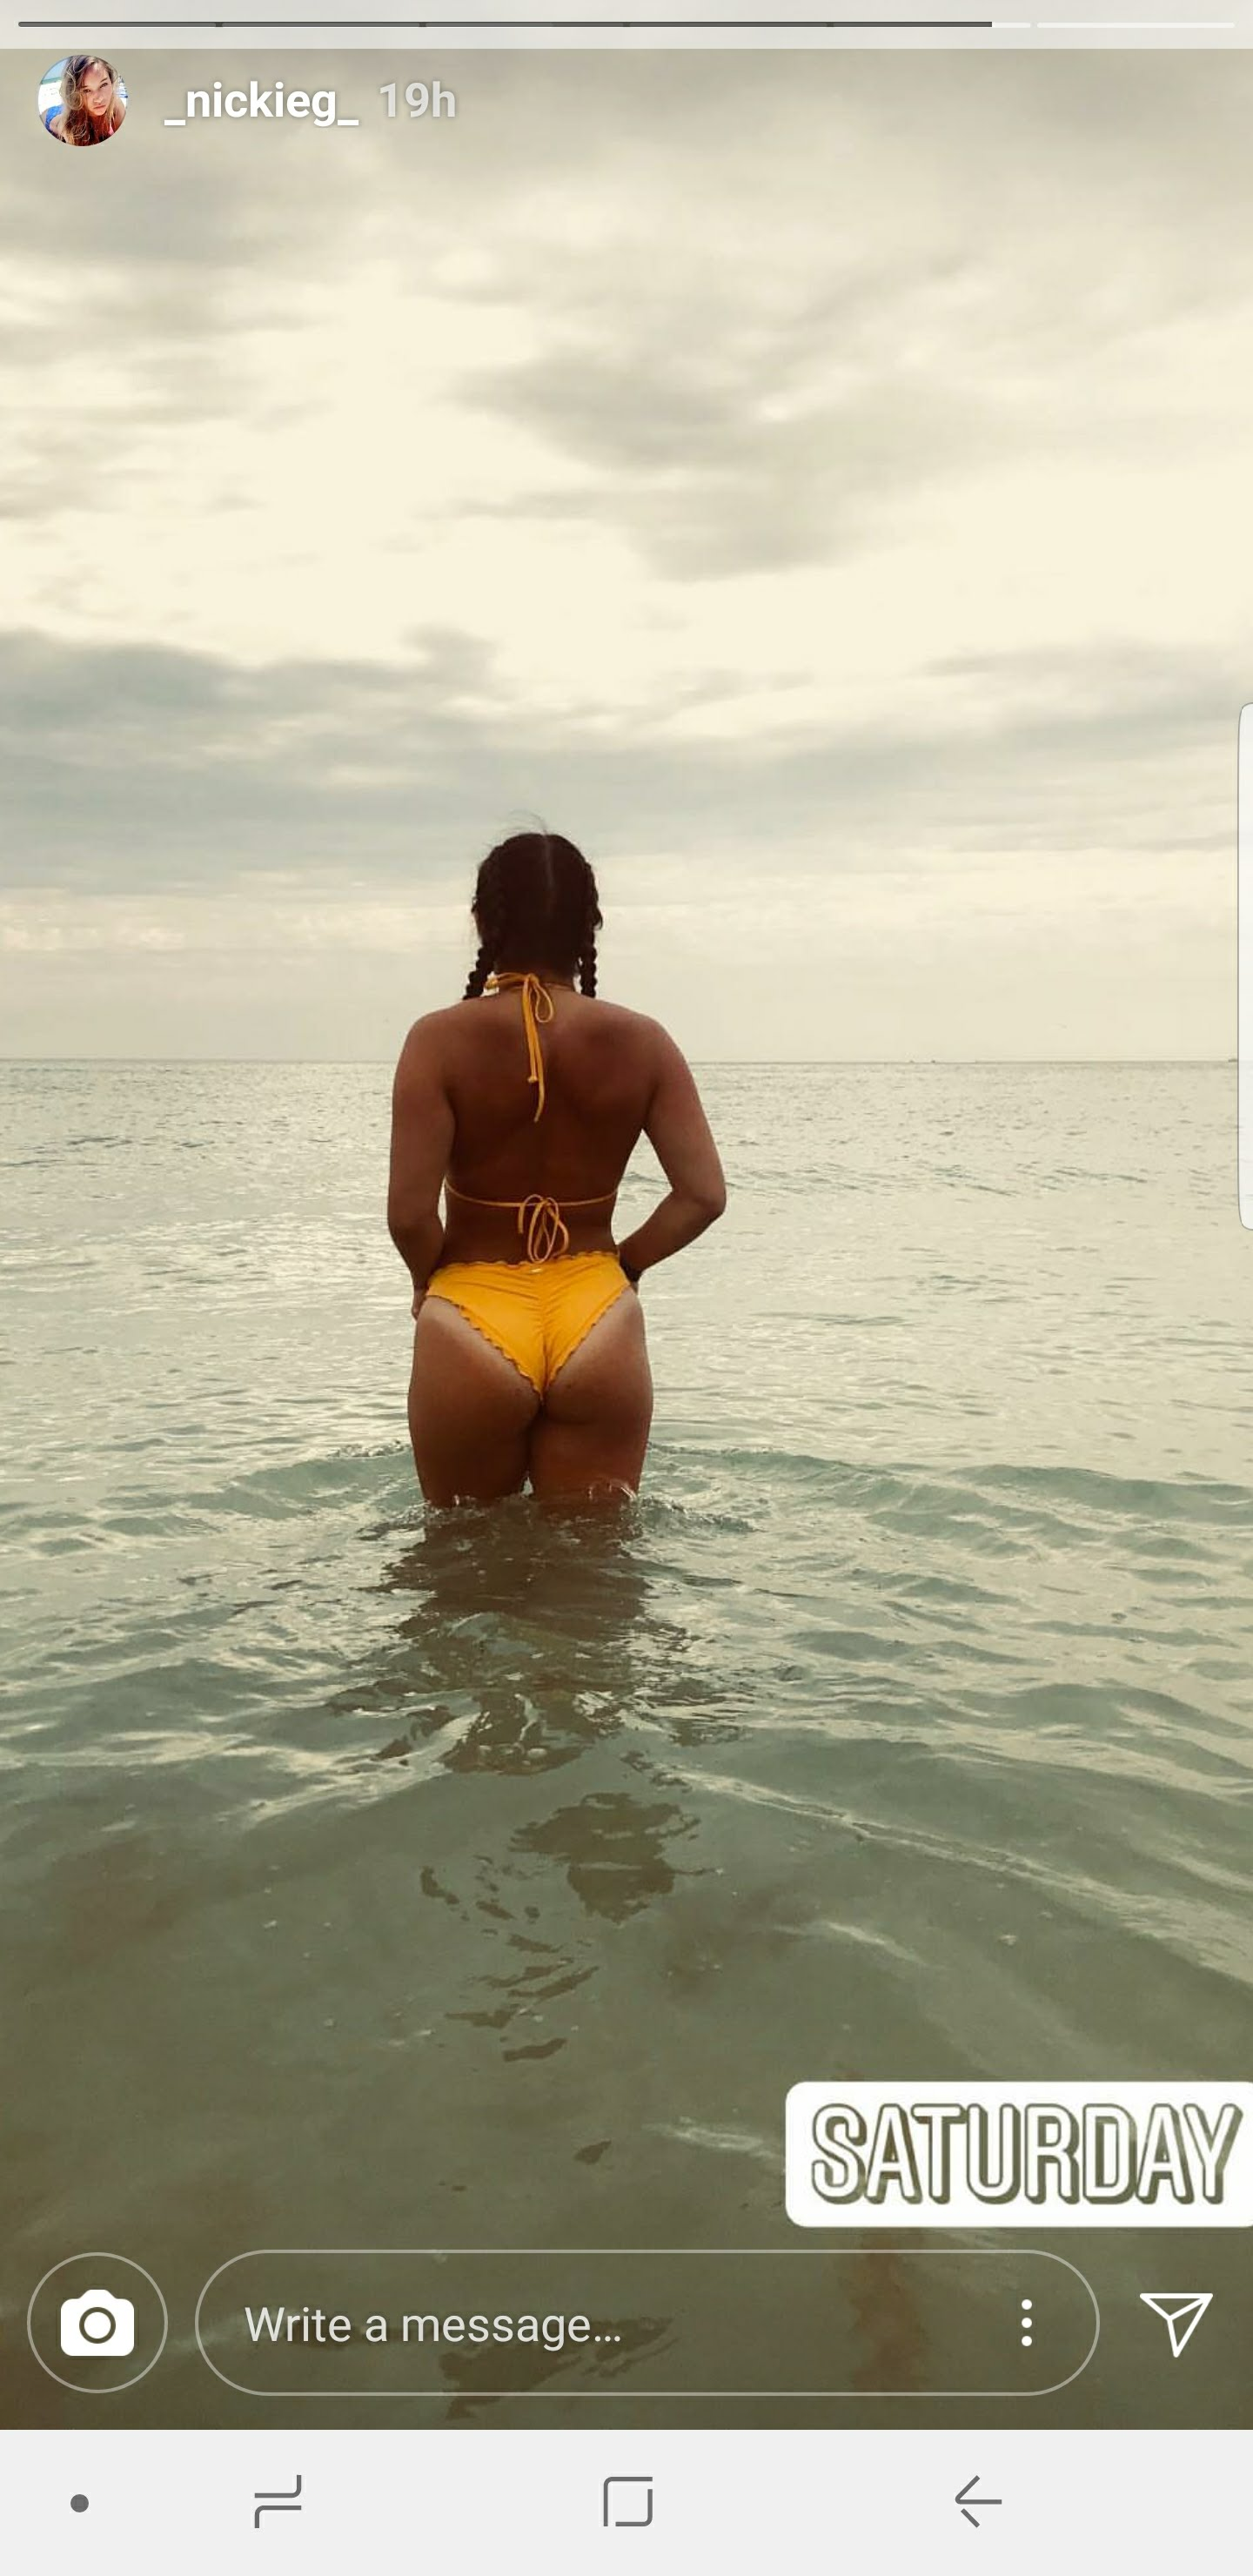 Girls with ass tan lines selfies remarkable, this